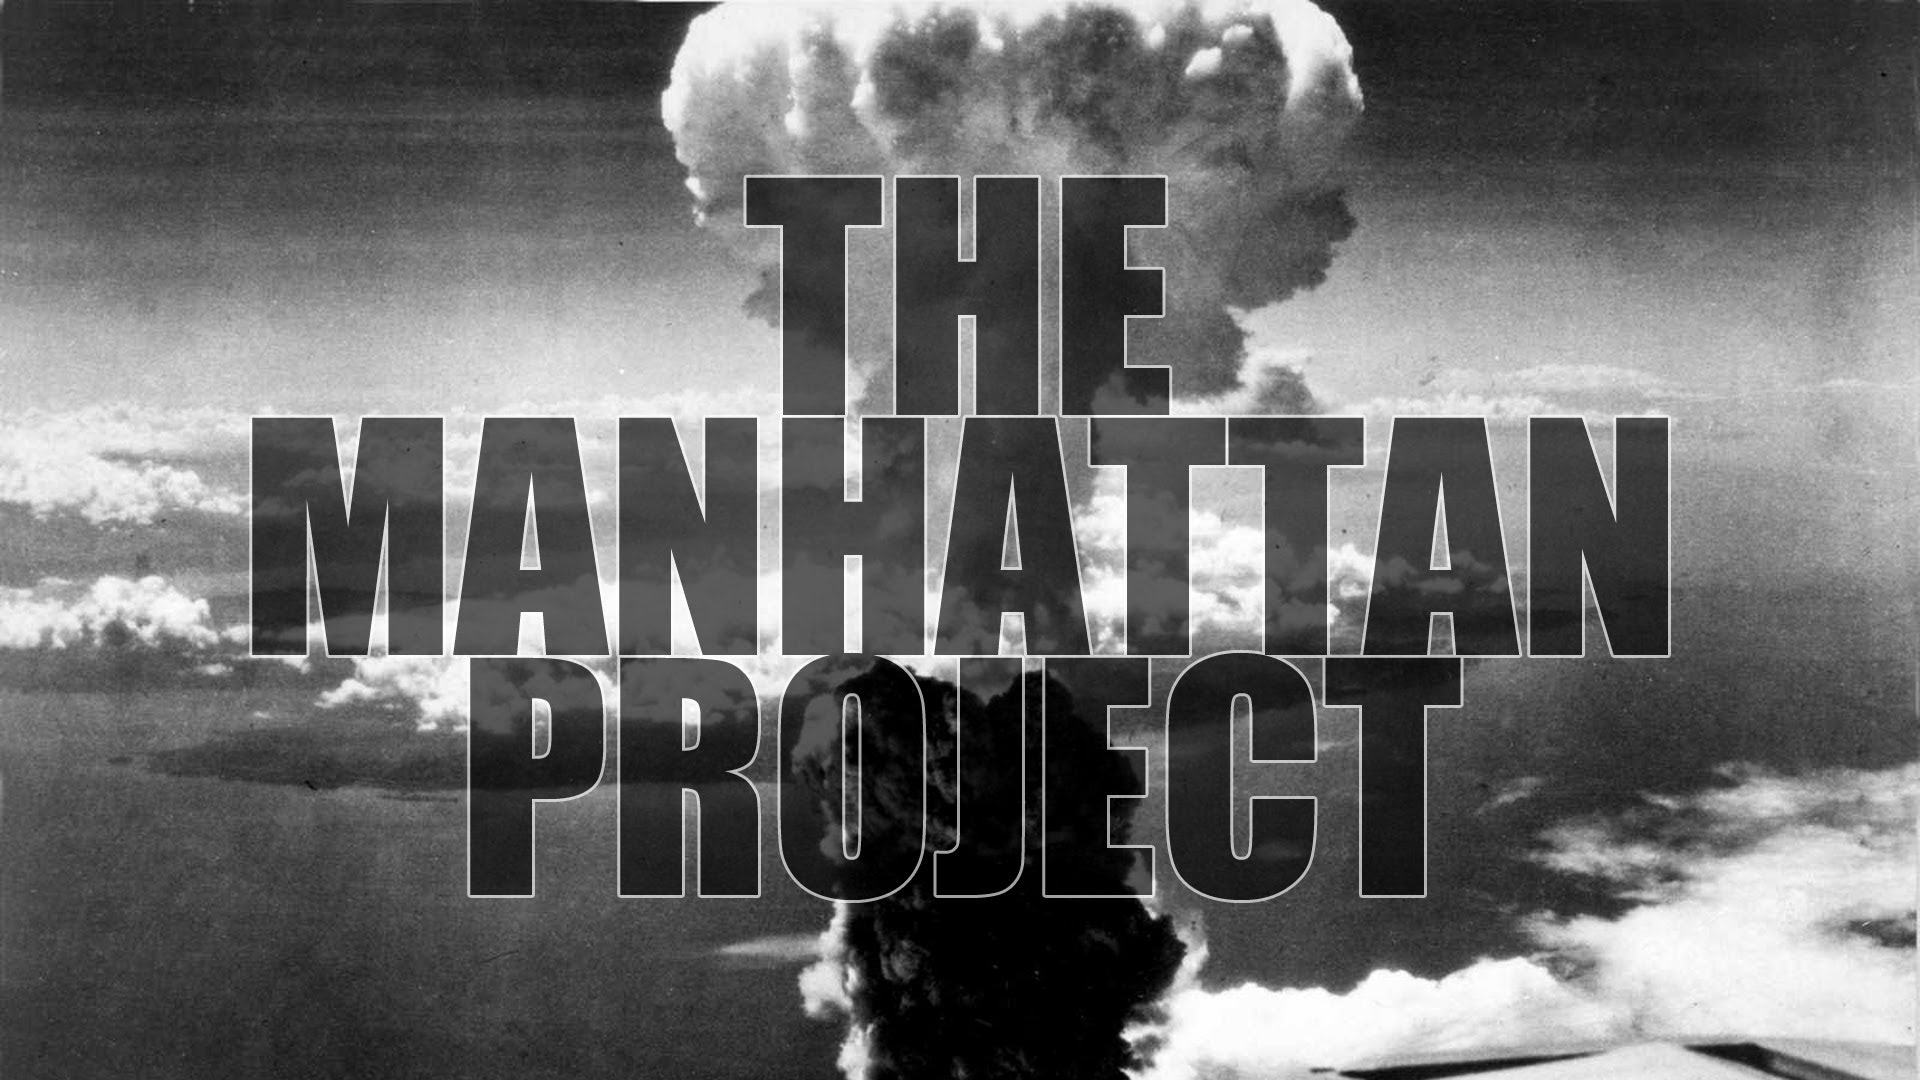 an introduction to the atomic bomb research in the united states the manhattan project View manhattan project atomic bomb from agribusine agbm 440 at egerton university surname 1 name instructor course date manhattan project atomic bomb i a introduction research question and.